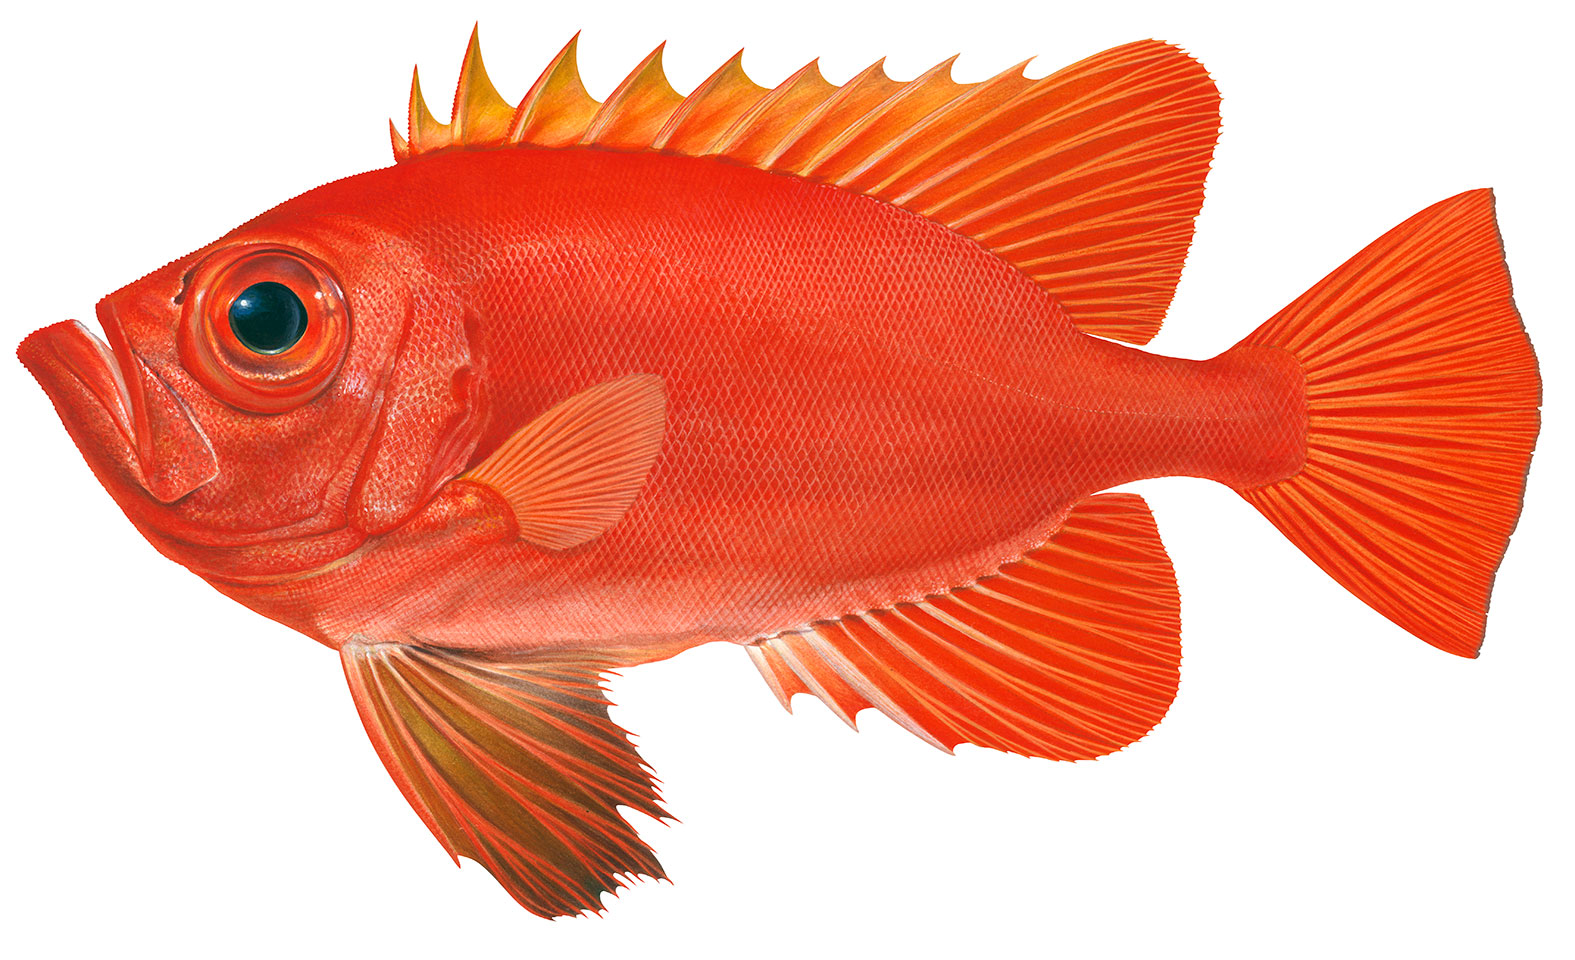 Print-Landing-page-Fish-category-Longfin-Bigeye2